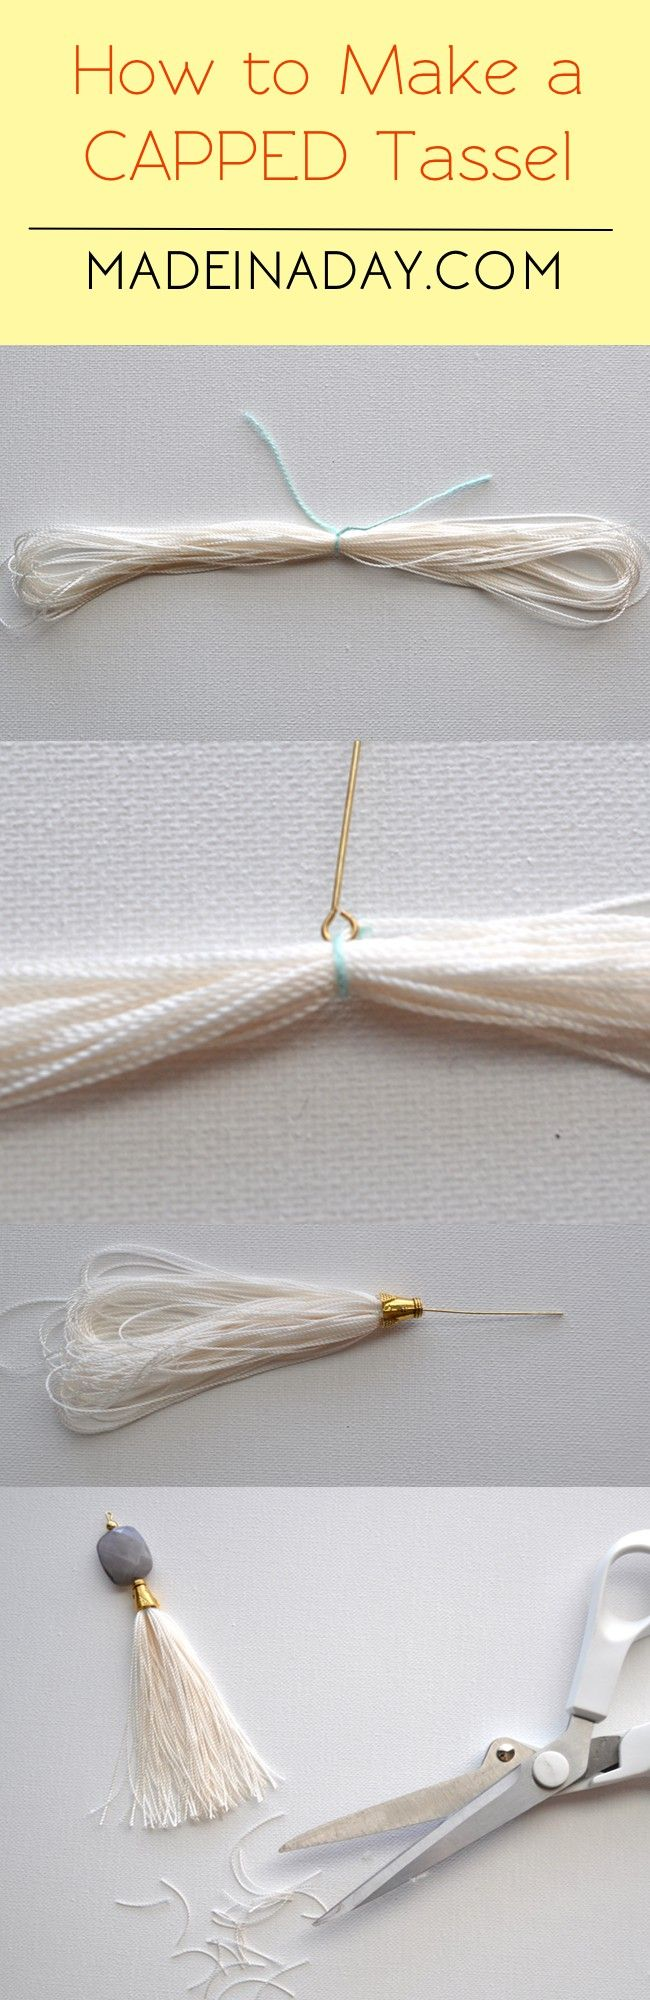 How-to-Make-a-Capped-Tassel-for-Tassel-Necklace-madeinaday.com_.jpg 650×2,000 pixels